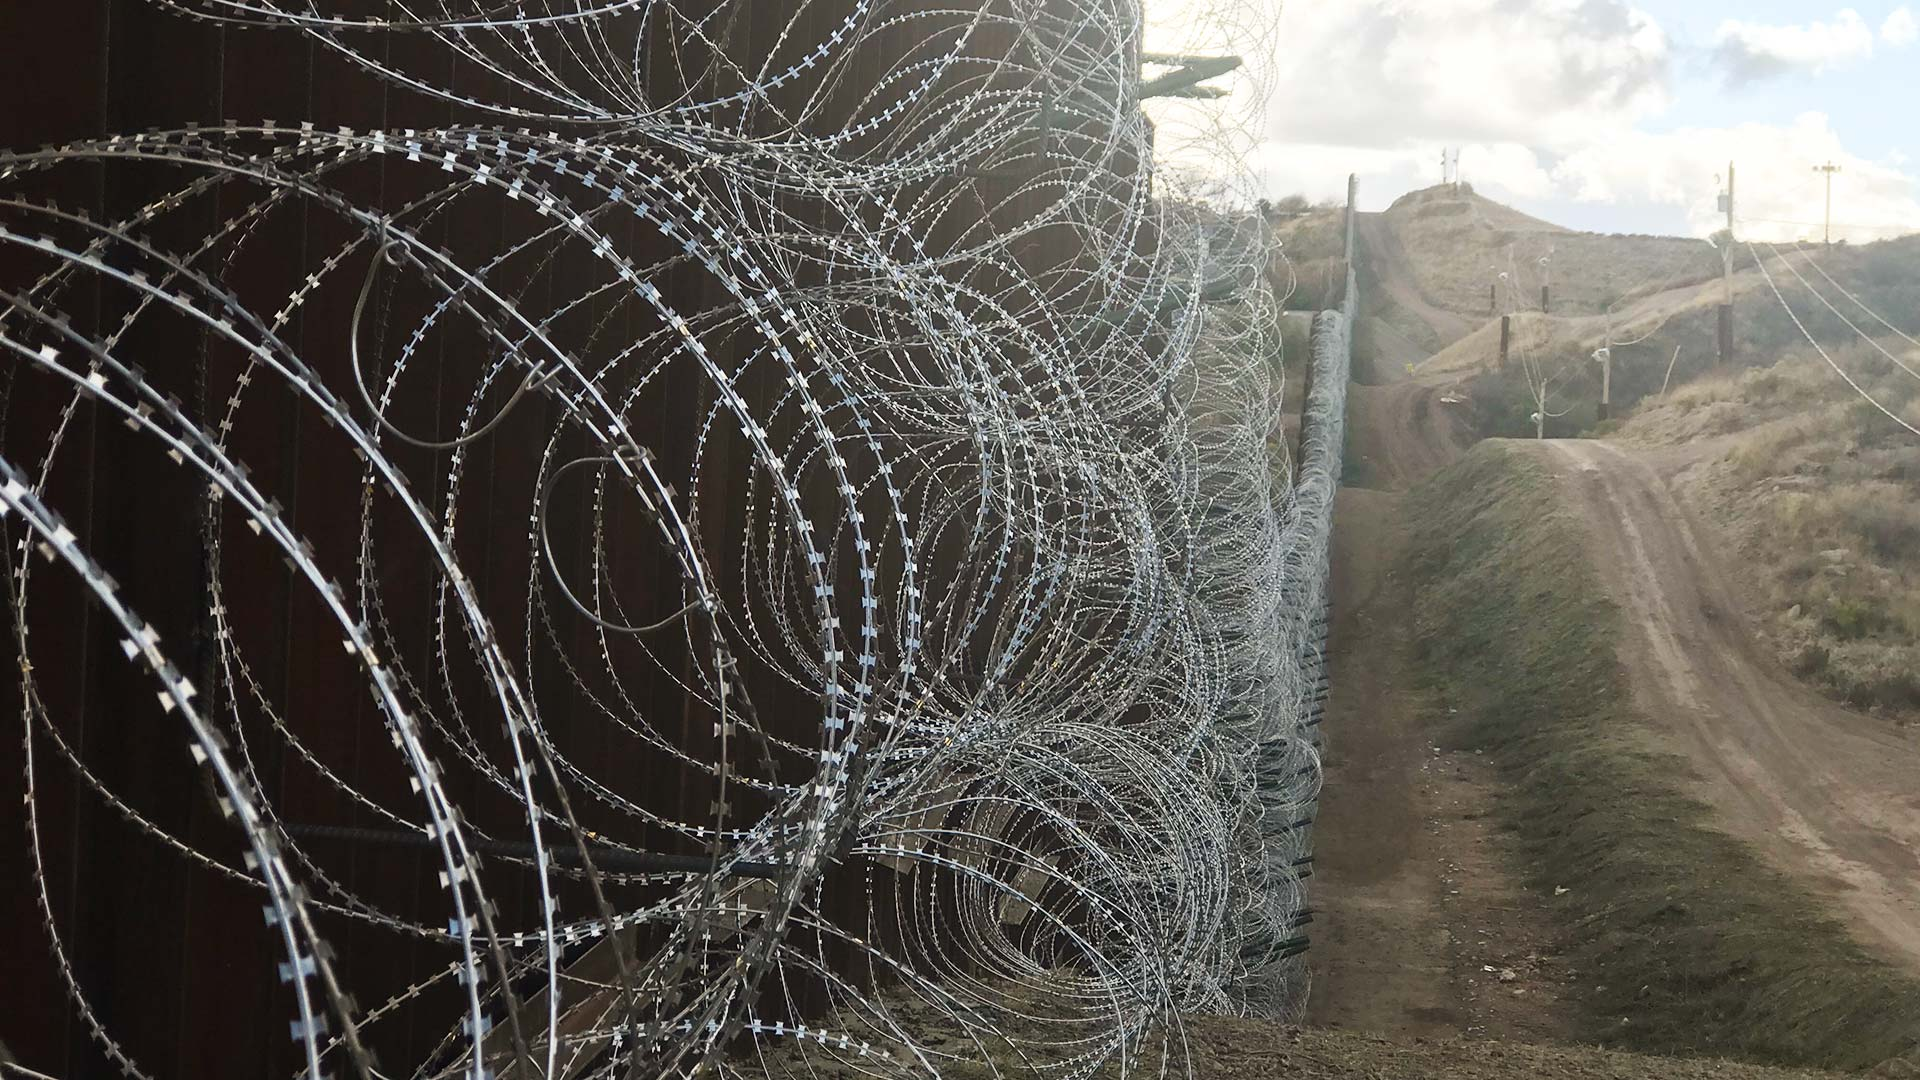 Rows of razor wire cover the U.S. side of a section of the wall near Nogales, Arizona.